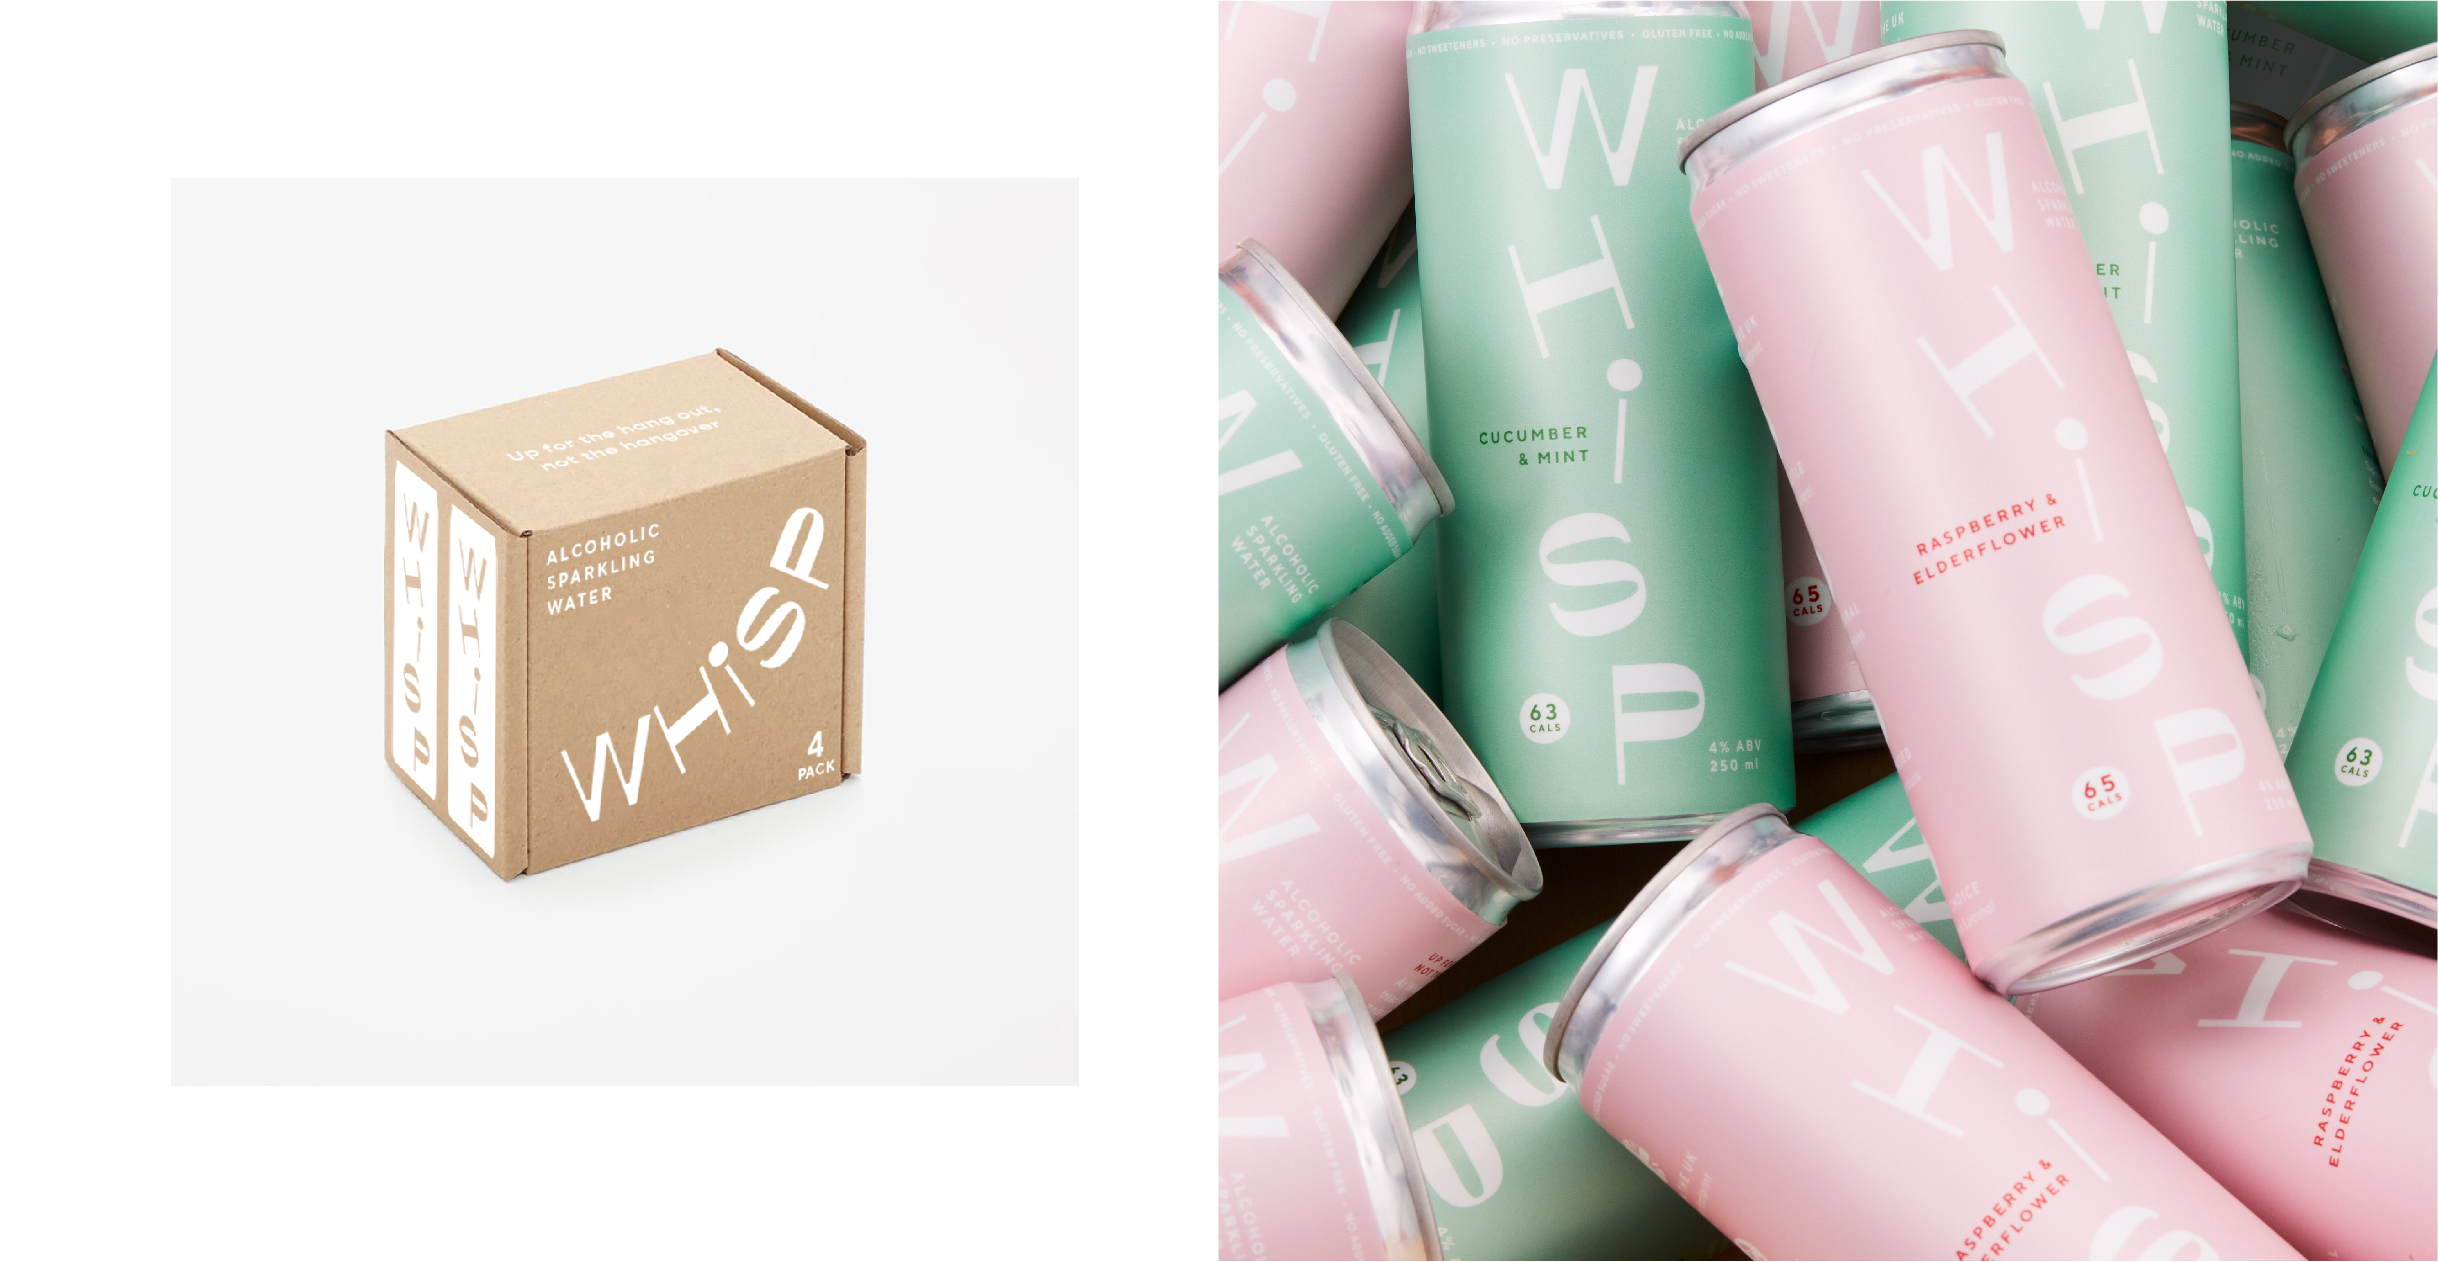 Whisp packaging - box and cans